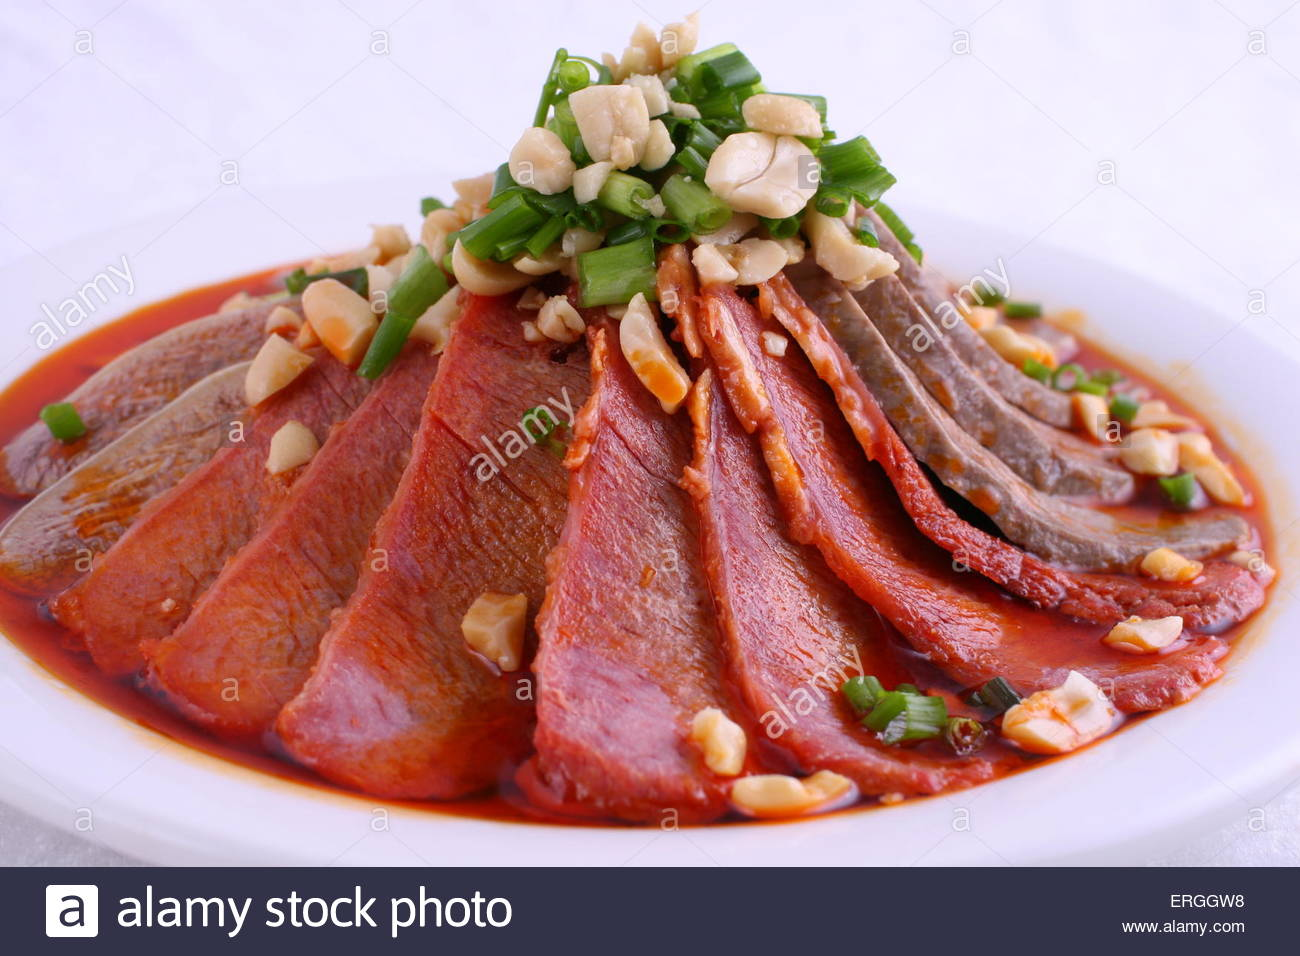 pork lungs in chili sauce - Stock Image